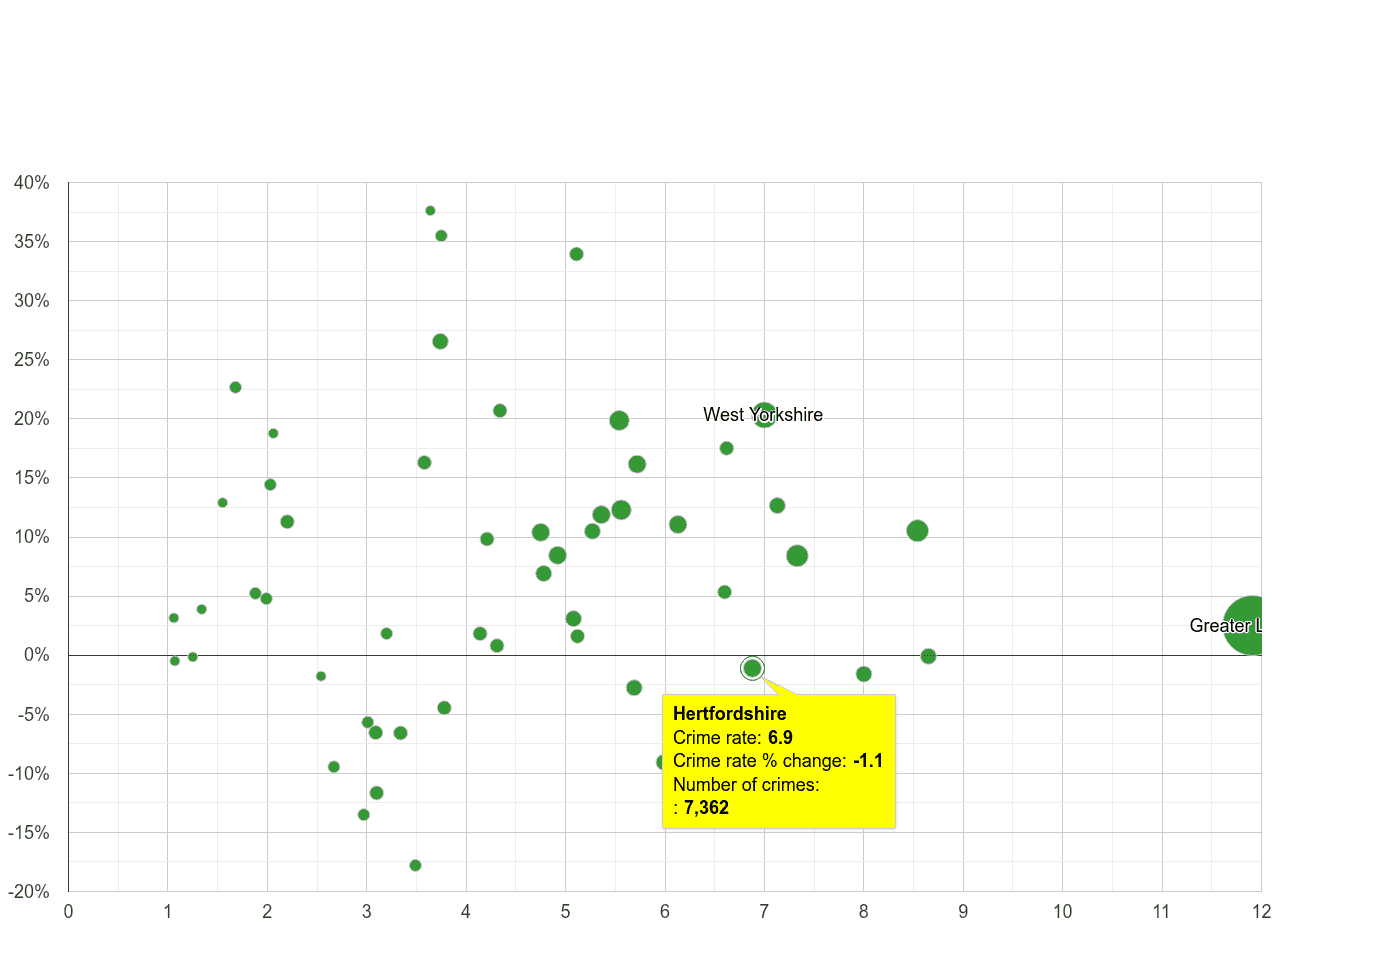 Hertfordshire vehicle crime rate compared to other counties